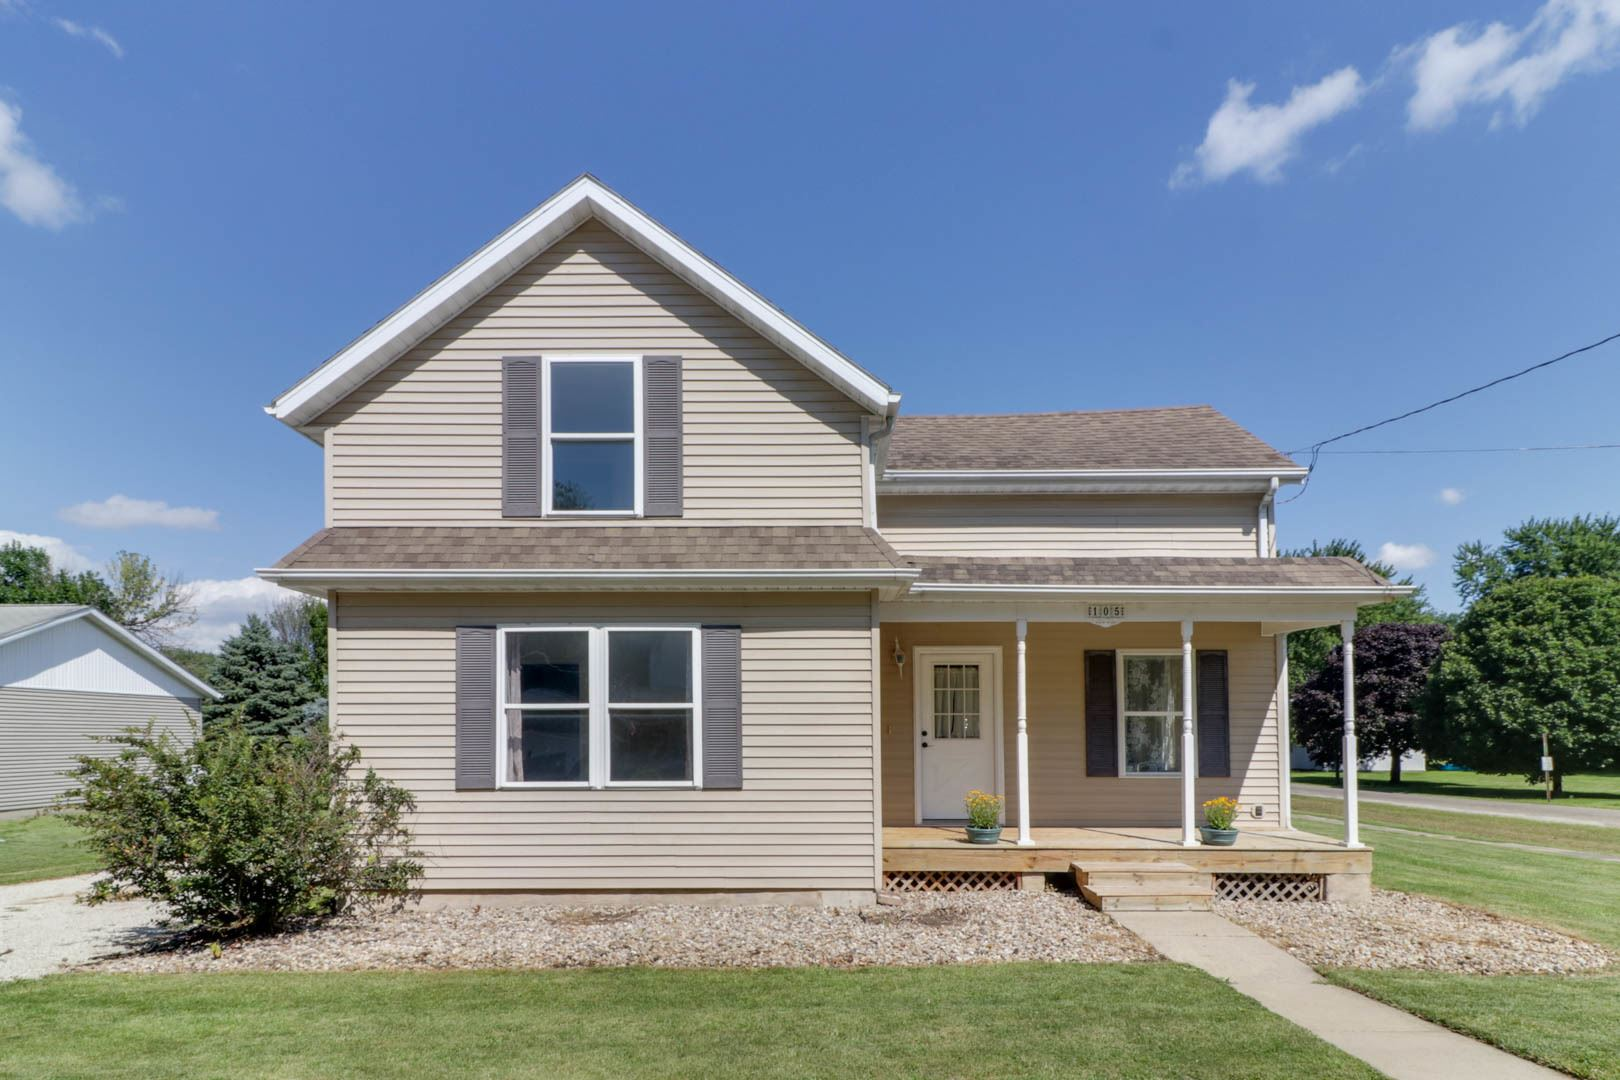 105 S Division Street, Stanford, IL 61774 - #: 10810565